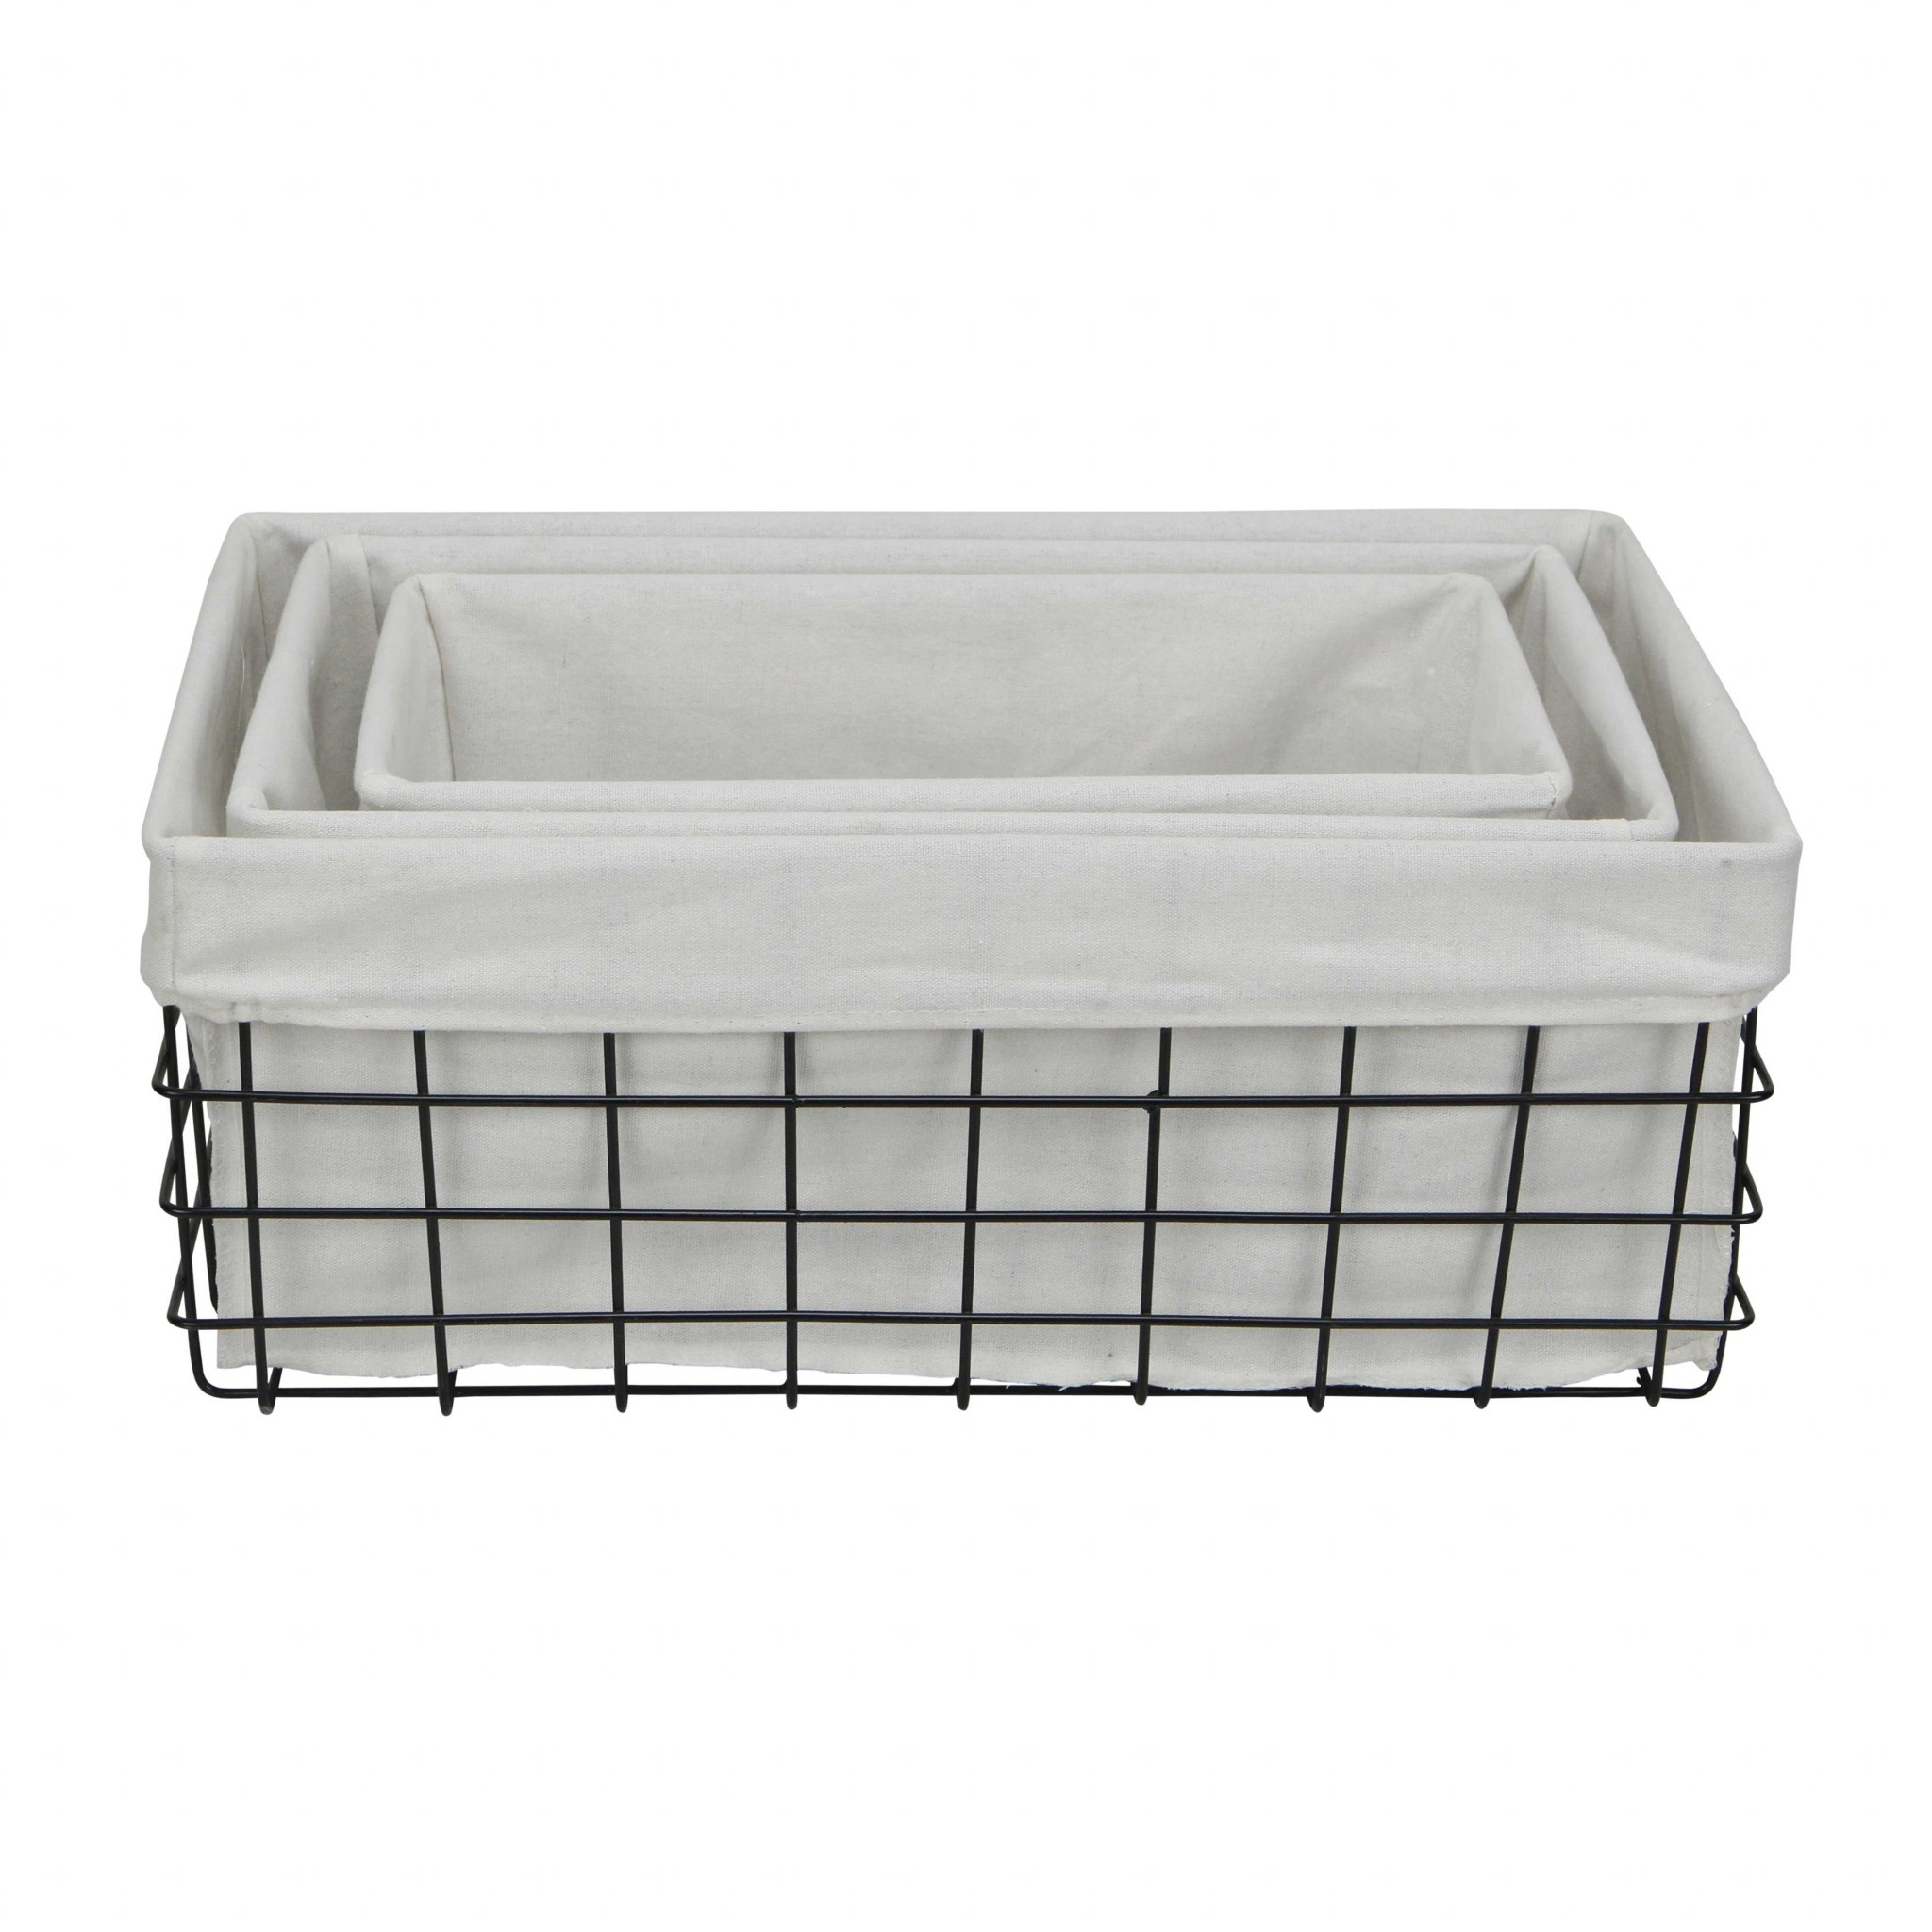 Set of 3 Rectangular White Lined and Metal Wire Baskets